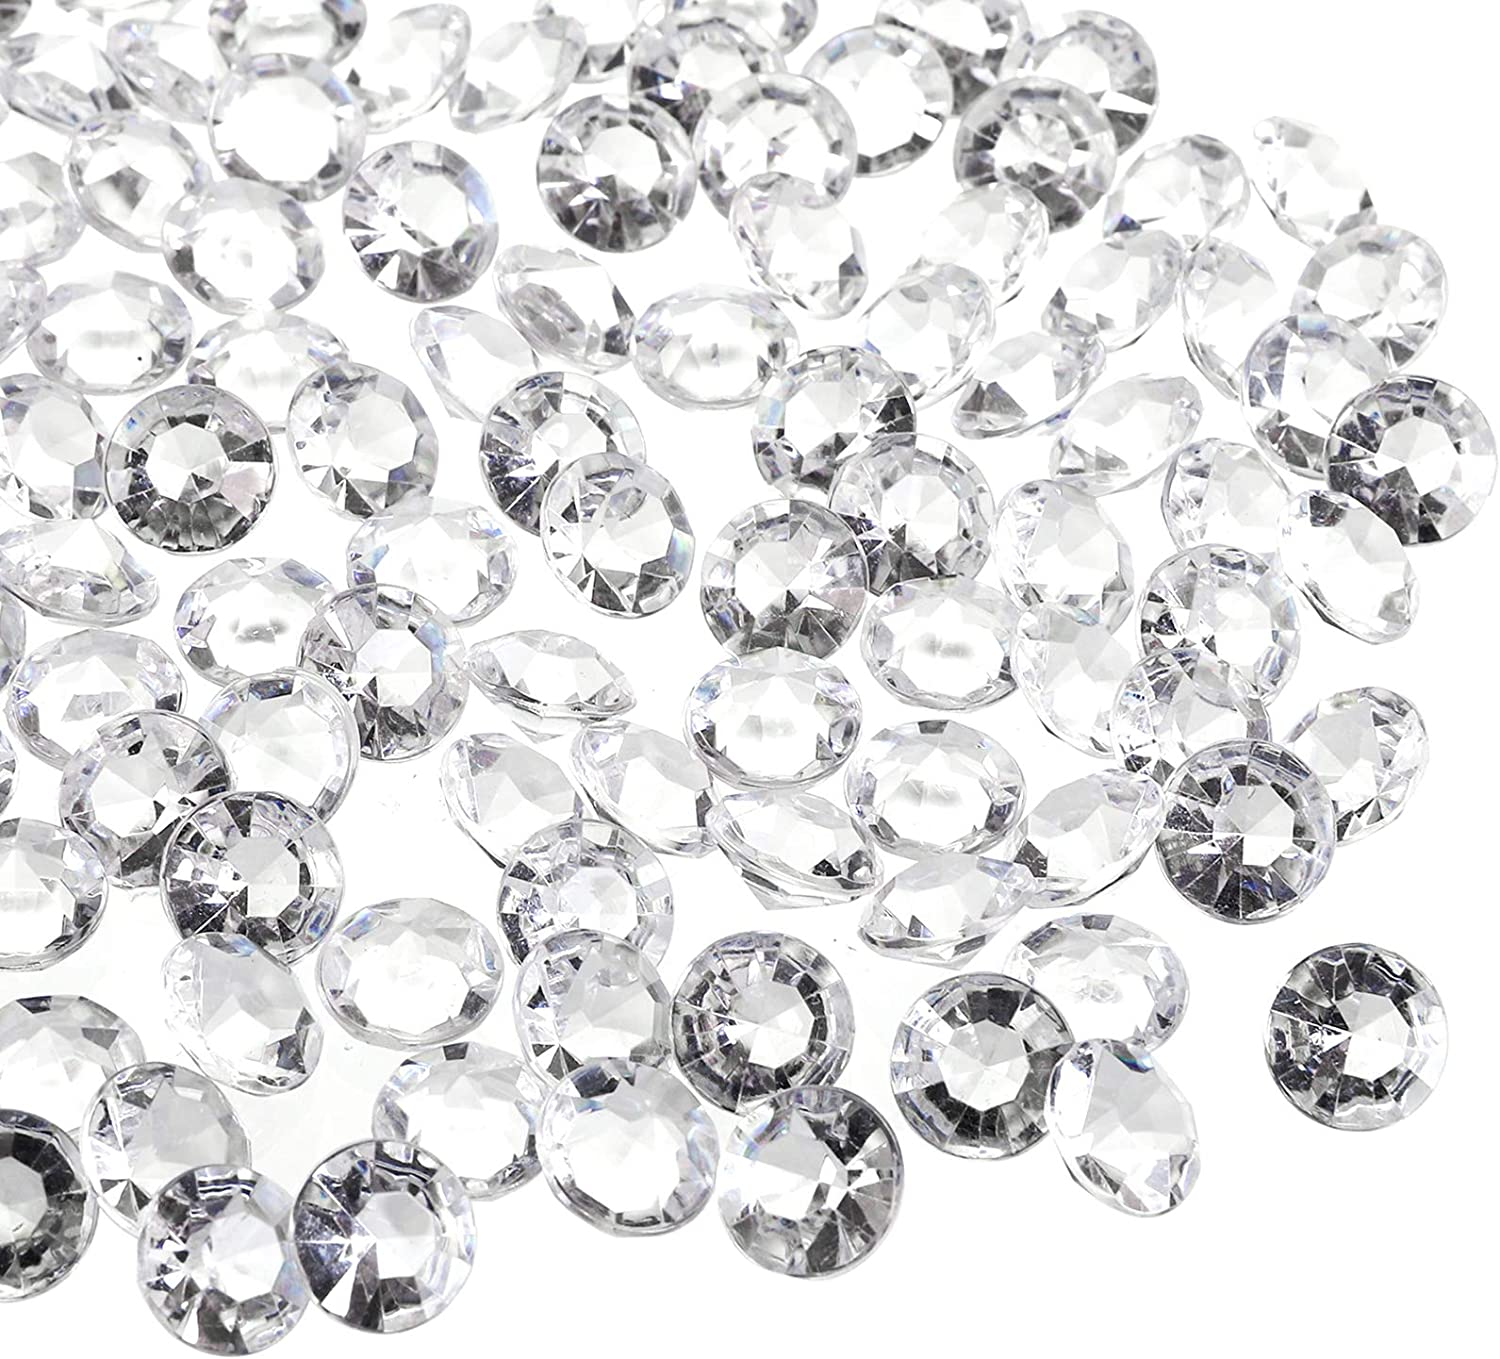 Bridal Shower Vase Beads Decorations Hedume 4200pcs Clear Wedding Table Scattering Crystals 0.4inch Acrylic Diamonds Gemstones for Wedding